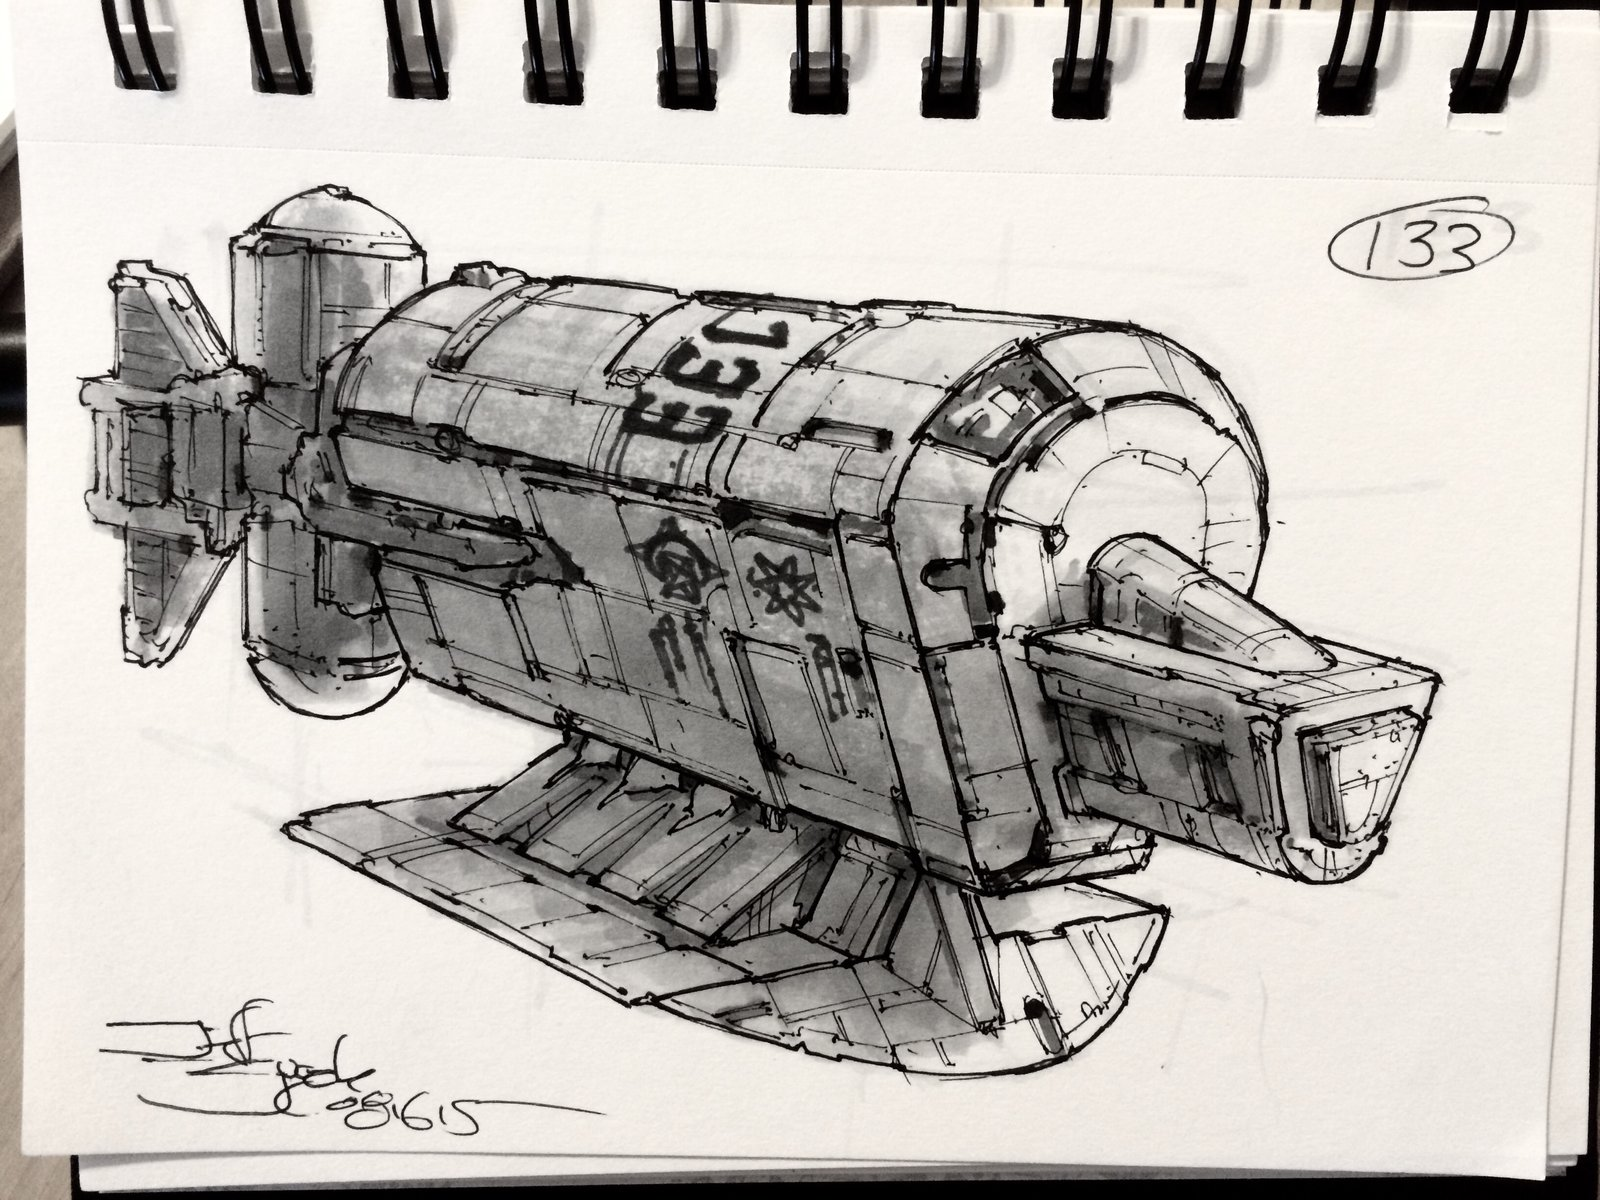 SpaceshipADay 133